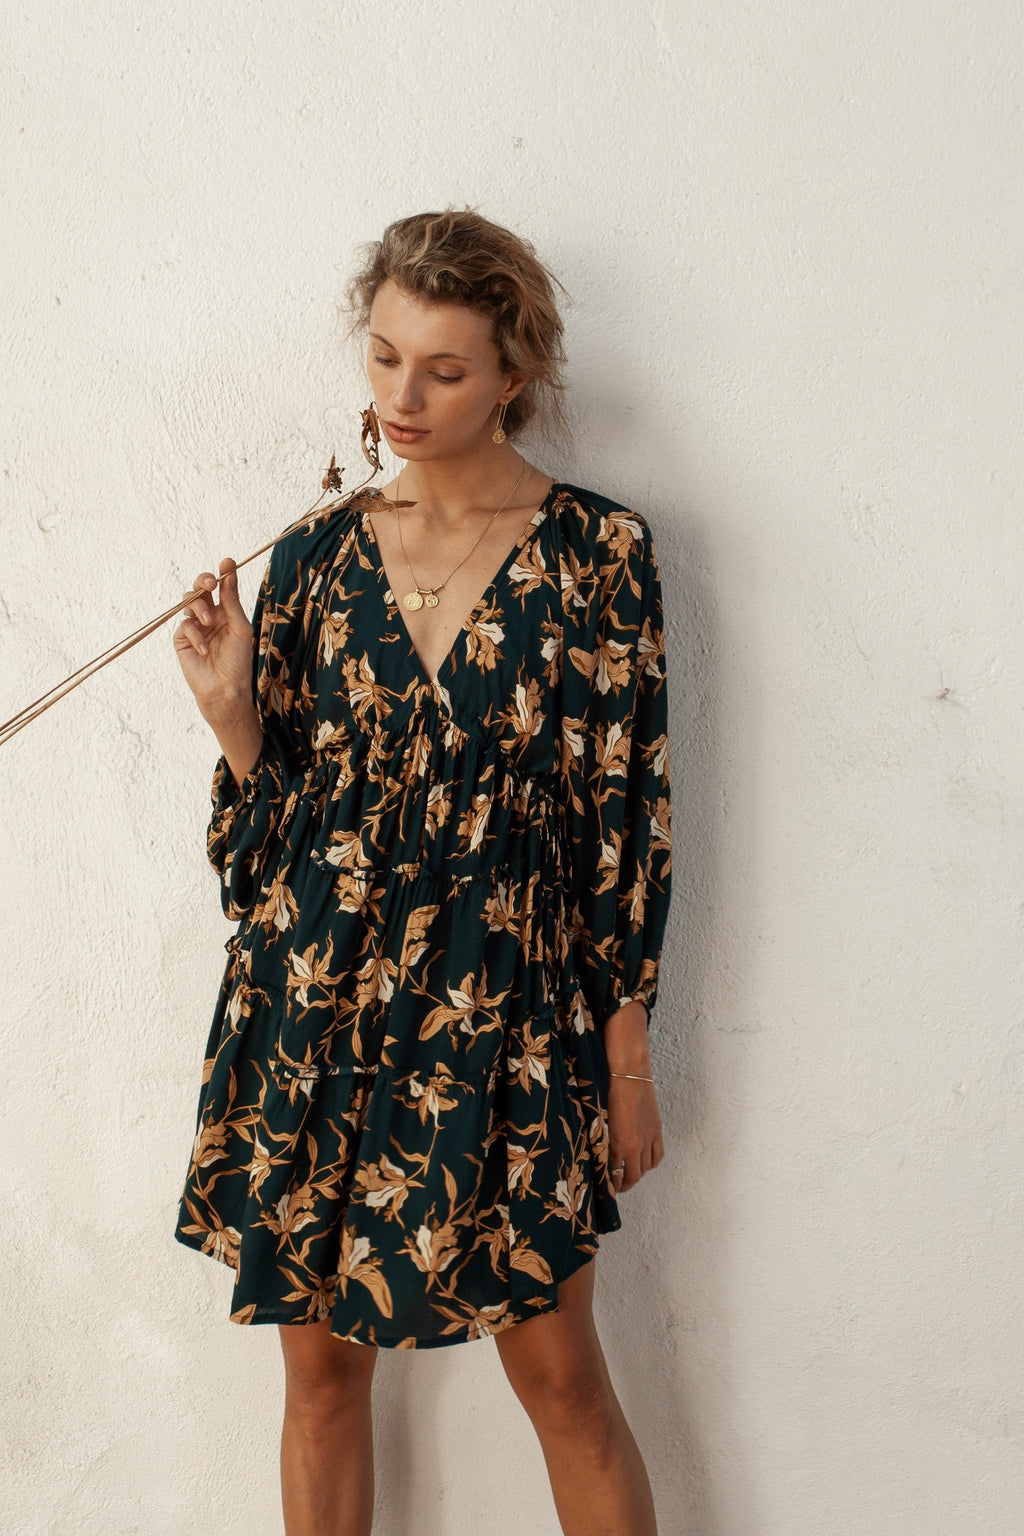 Oleander Smock Dress Azaleas by Bird and Kite online at PAYA Boutique